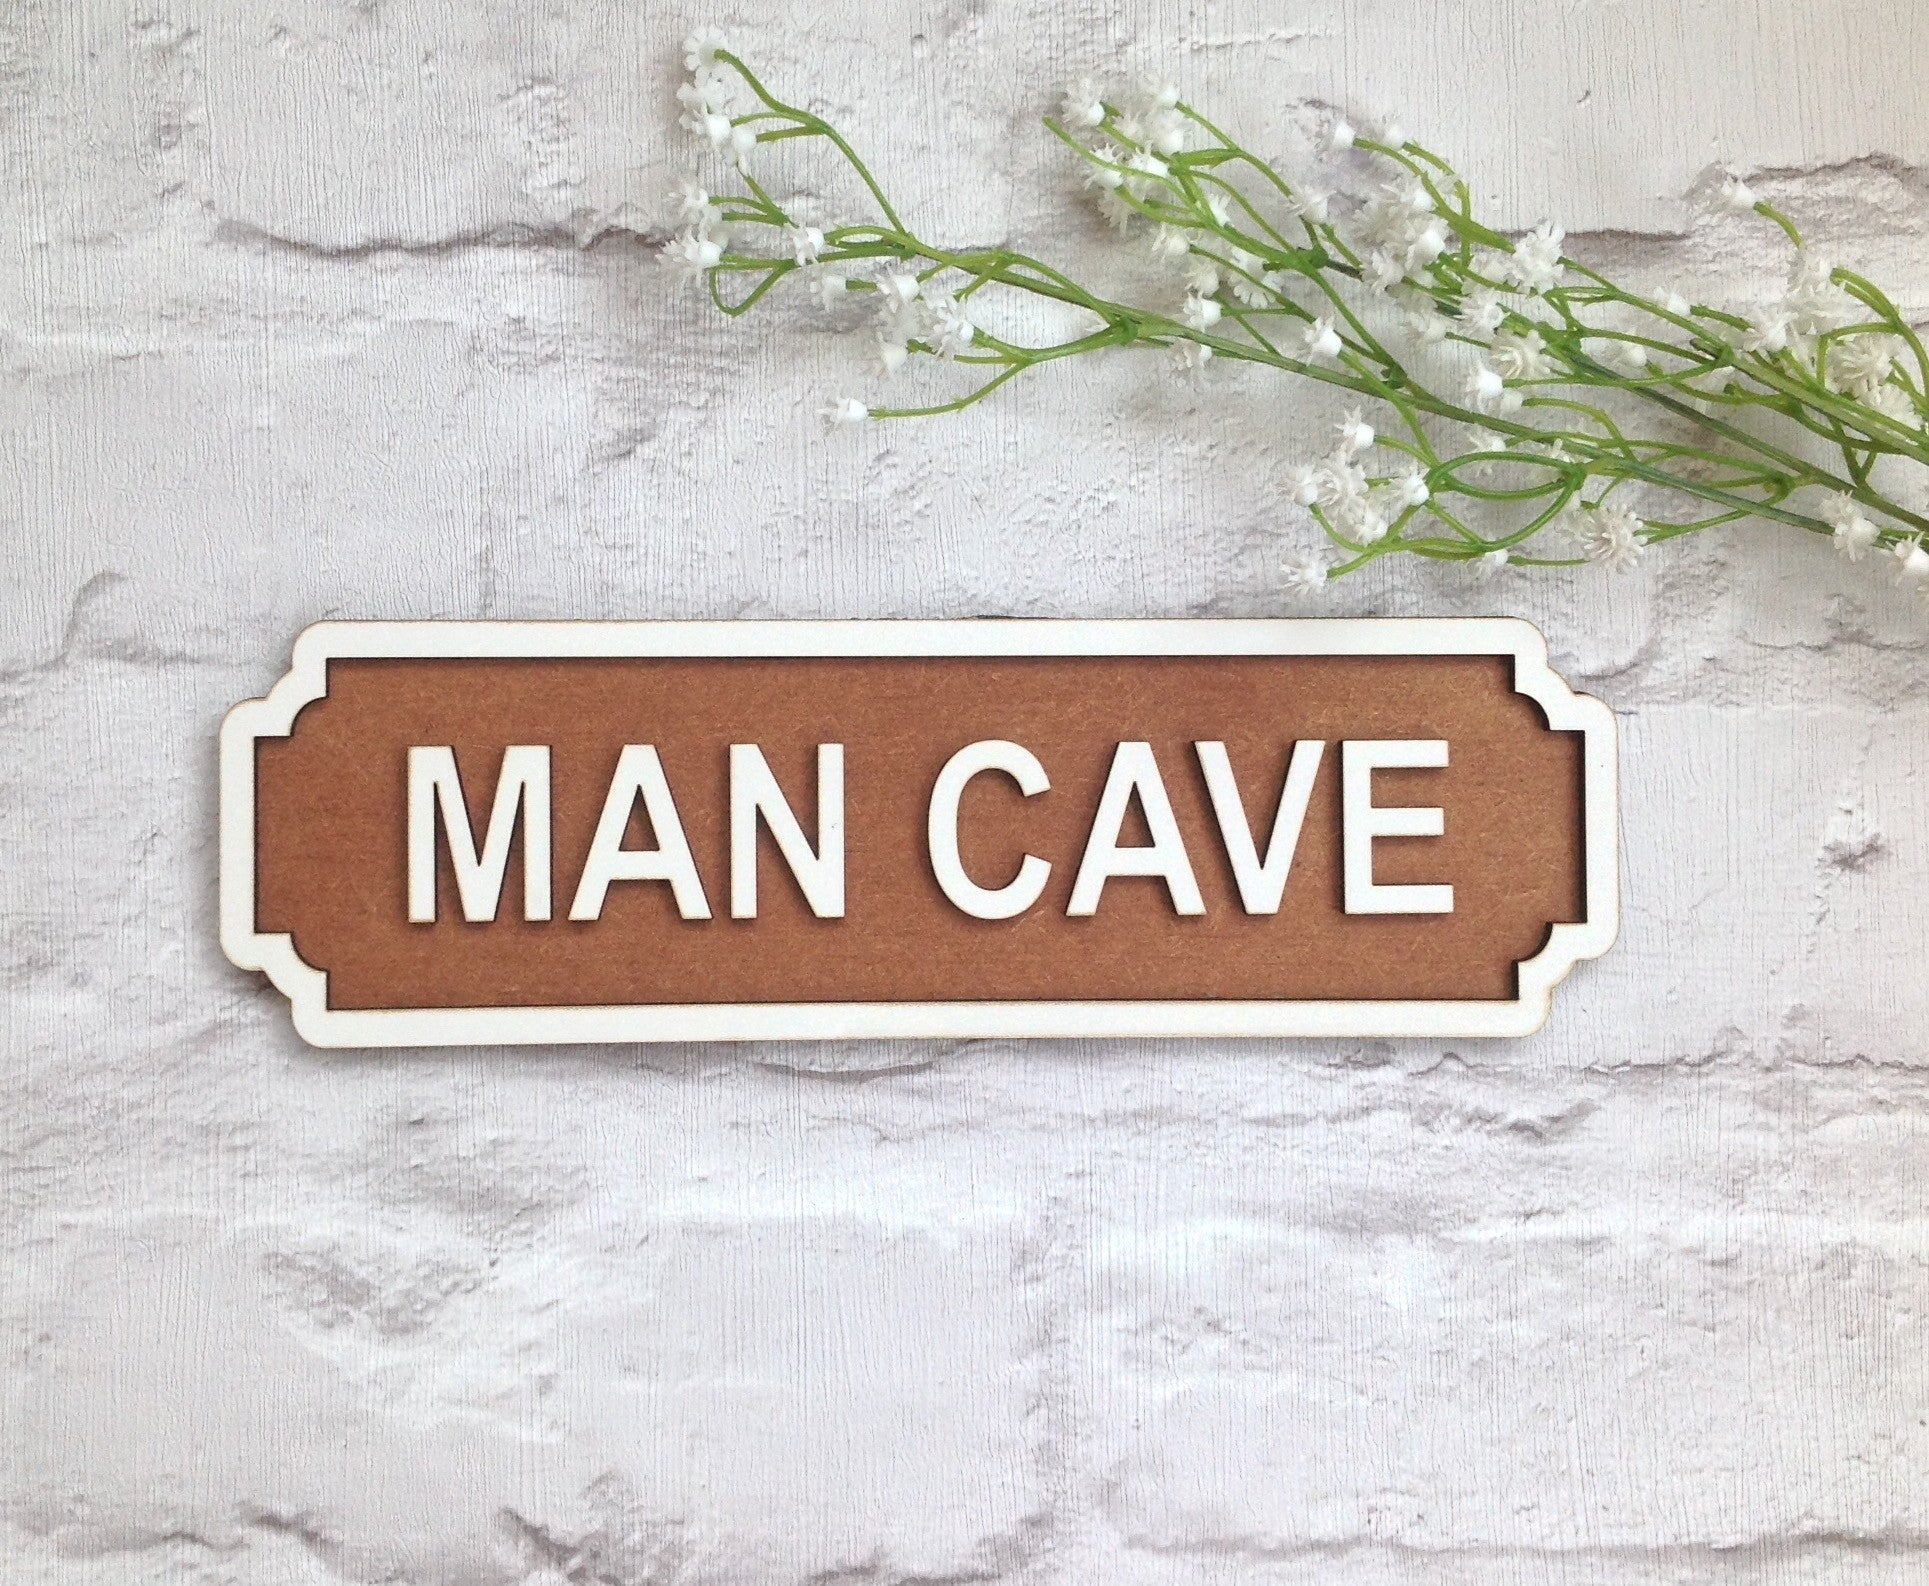 Man Cave Gifts Uk : Man cave railway vintage style personalised name plaque